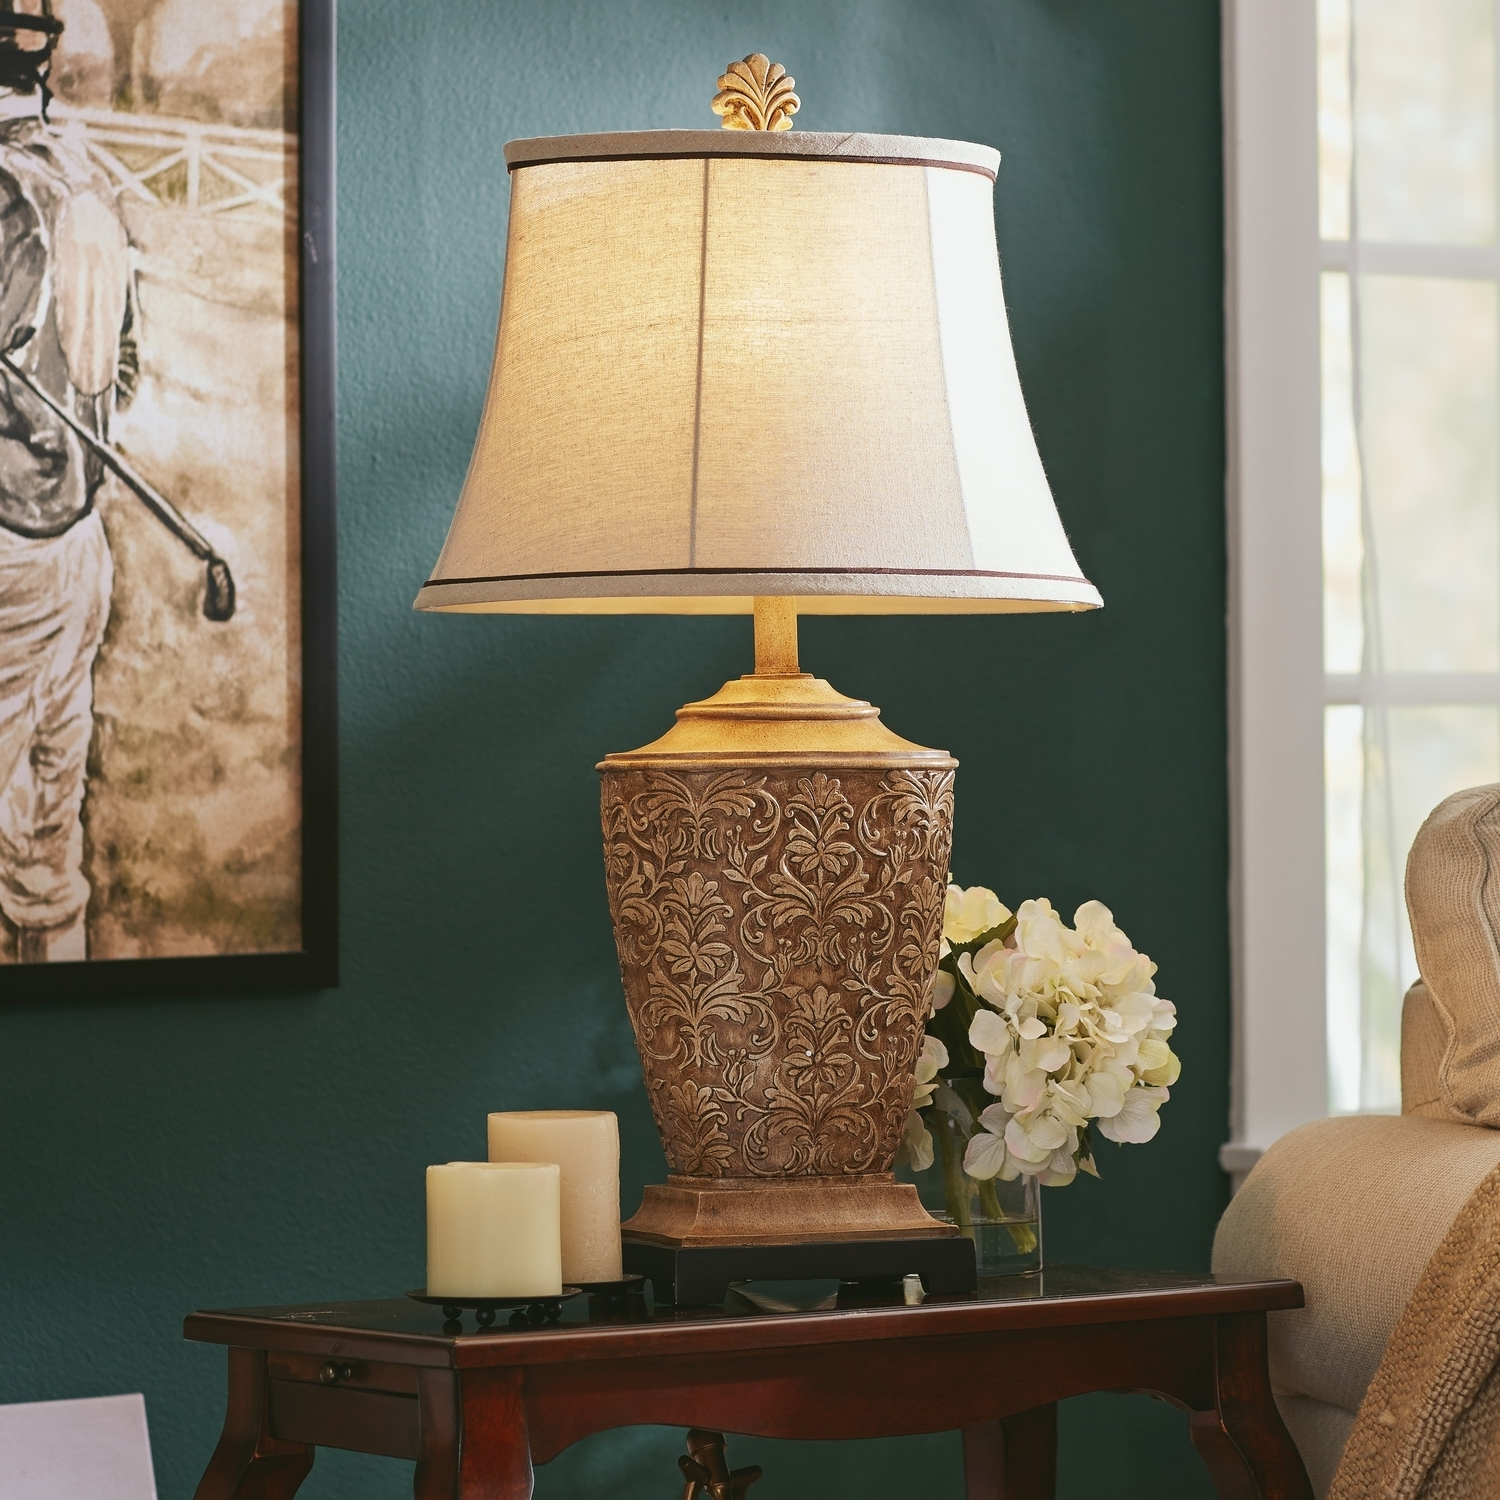 Fashionable Table Lamps For Living Room 15 With Table Lamps For Living Room Within Living Room Table Lamps (View 2 of 15)